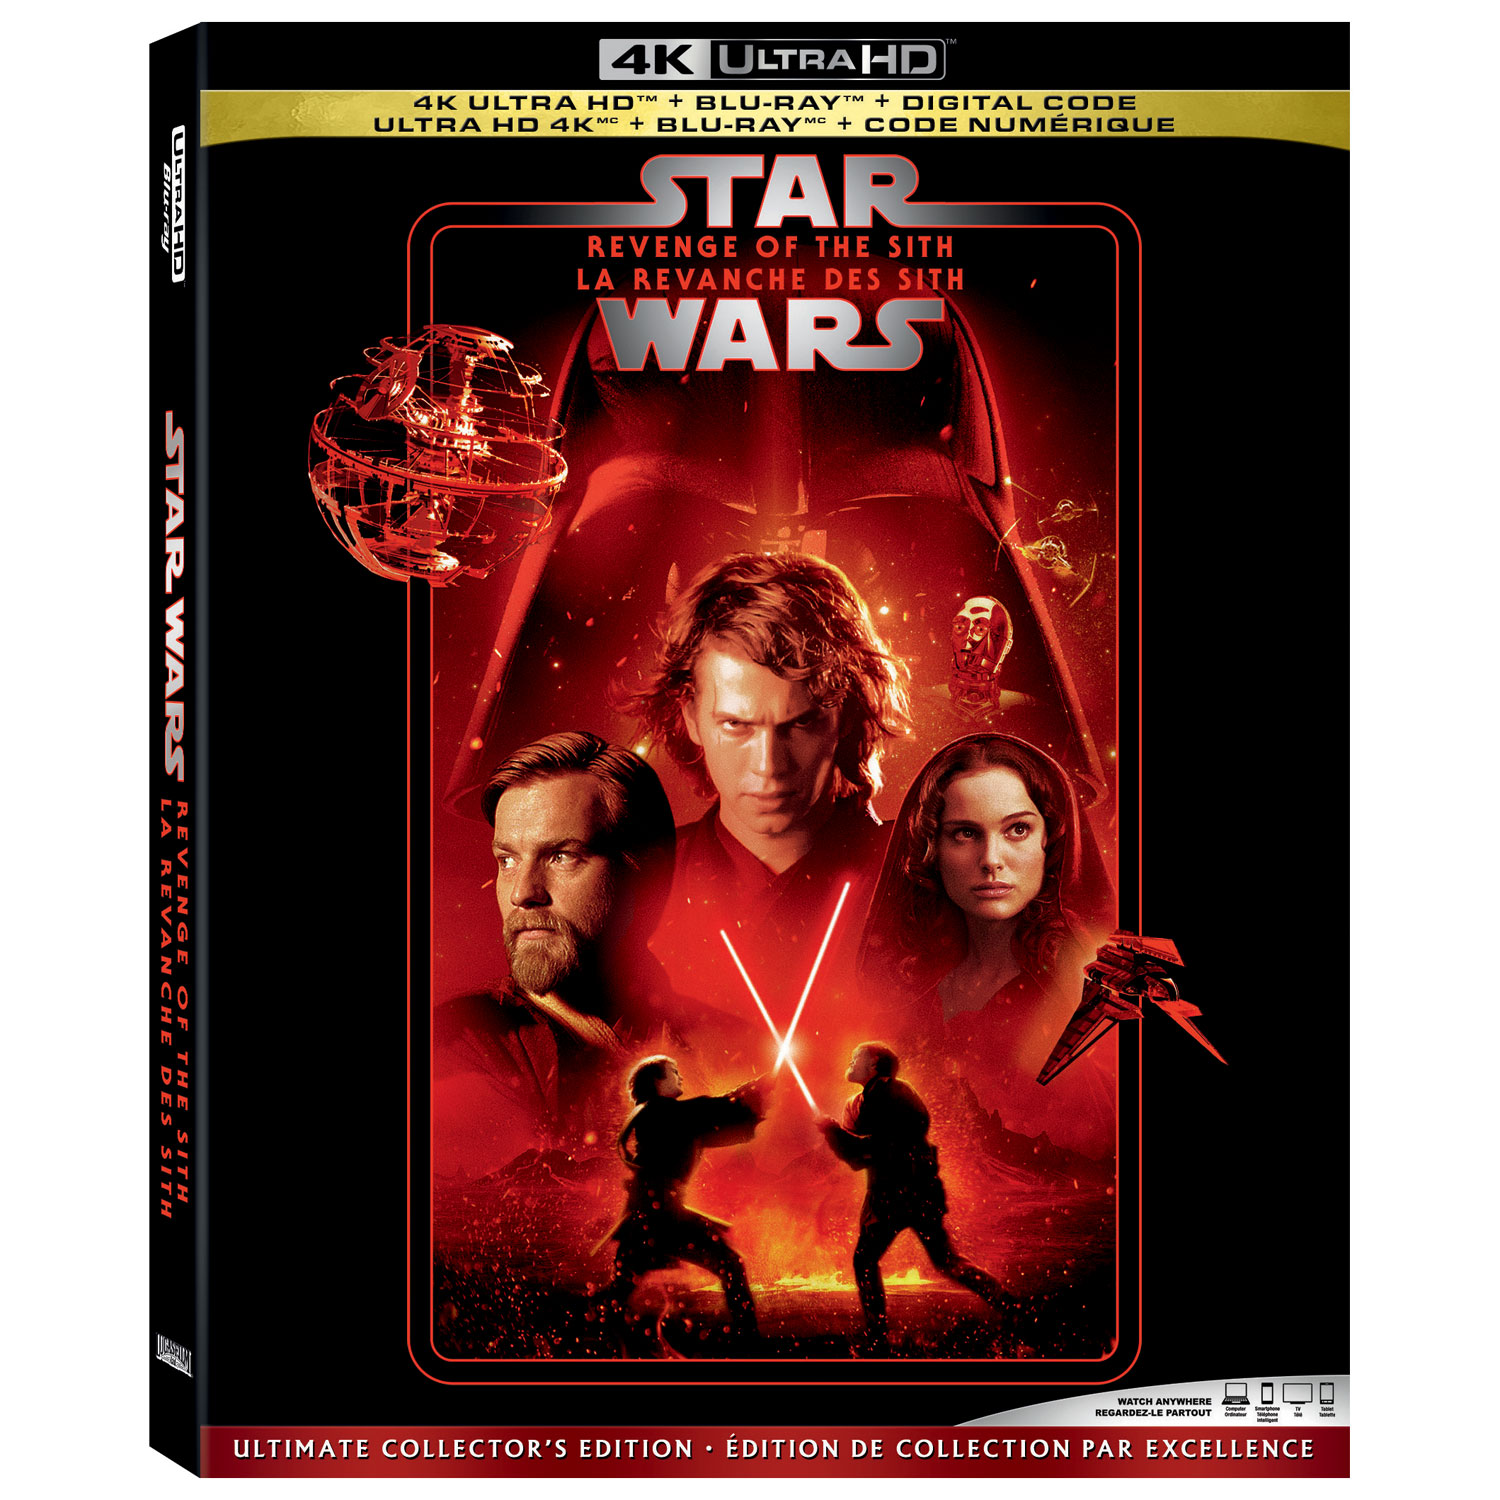 Star Wars Revenge Of The Sith Ultimate Collectors Edition 4k Ultra Hd Blu Ray Combo Best Buy Canada